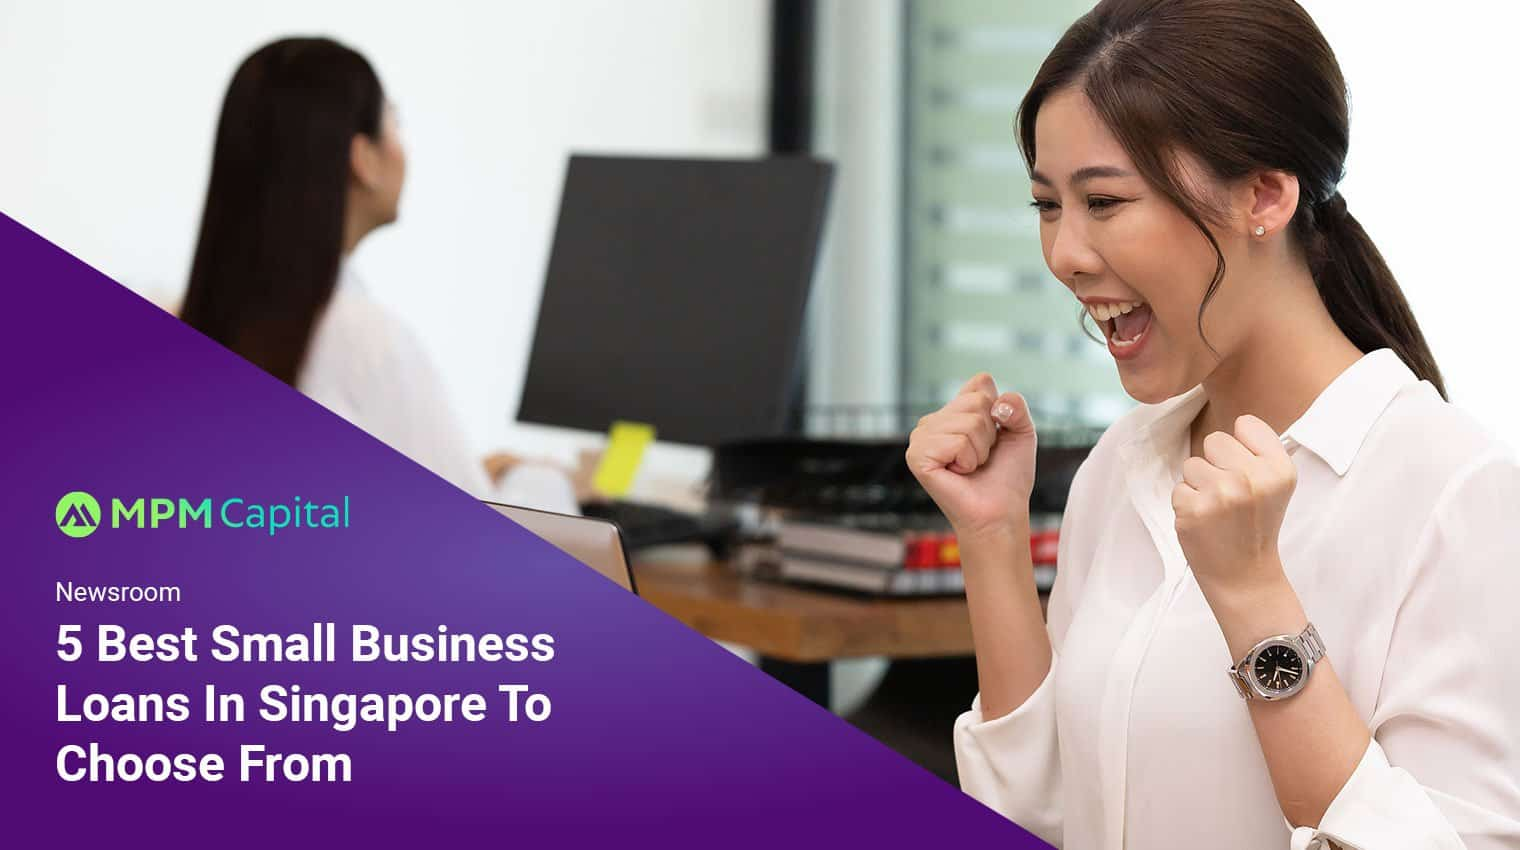 MPM-Capital-5-Best-Small-Business-Loans-In-Singapore-To-Choose-From